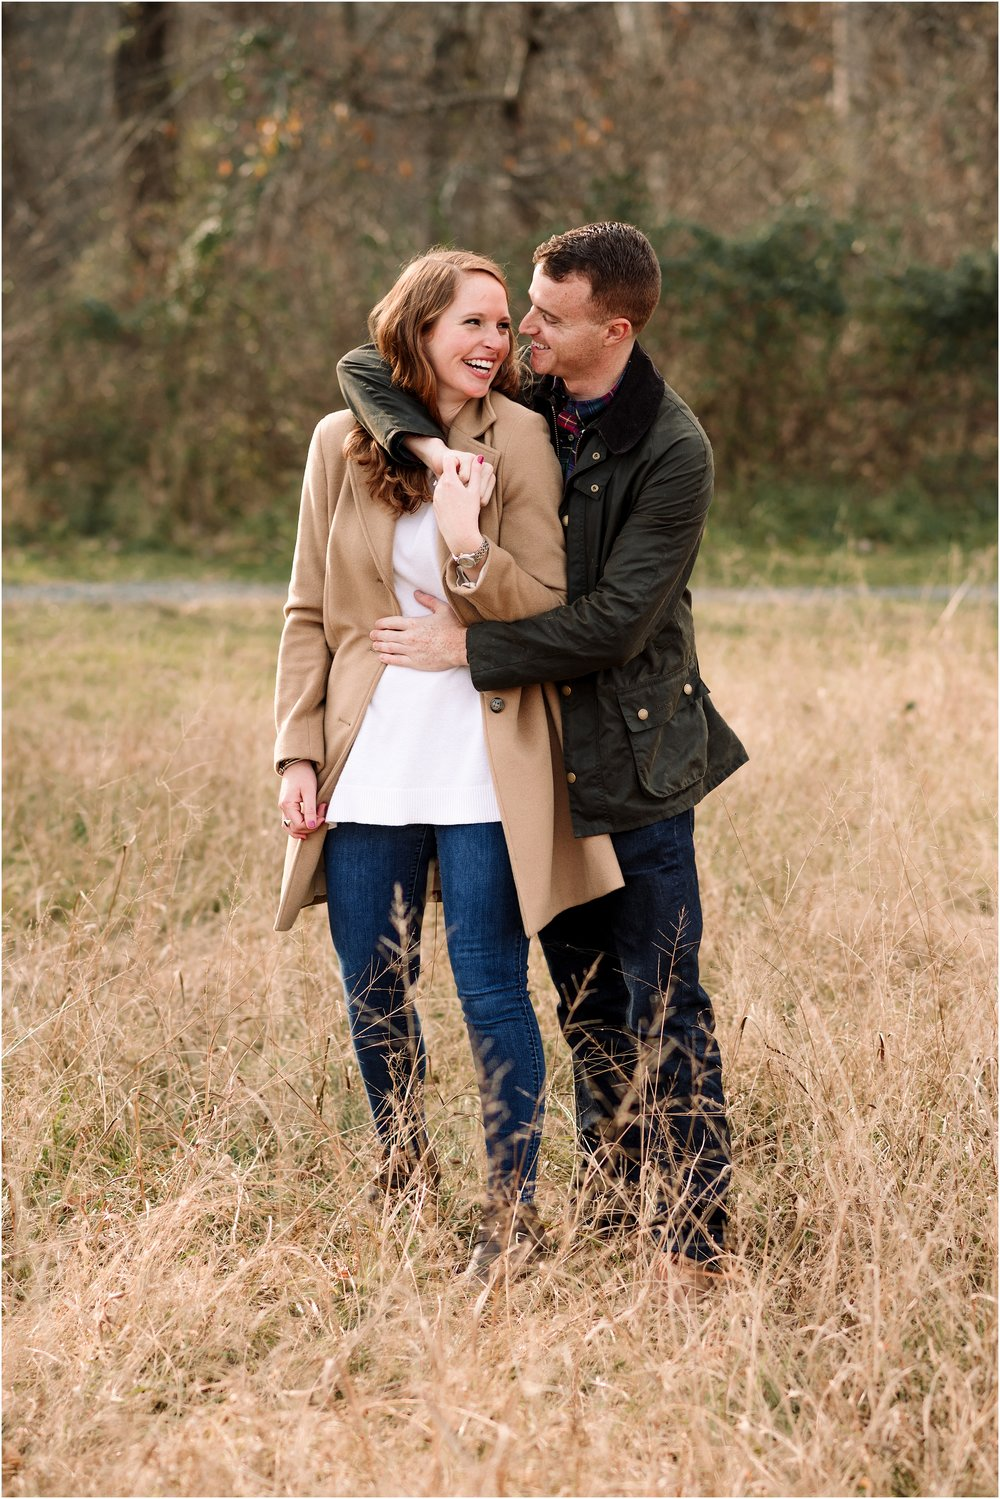 hannah leigh photography Annapolis MD Engagement Session_2417.jpg